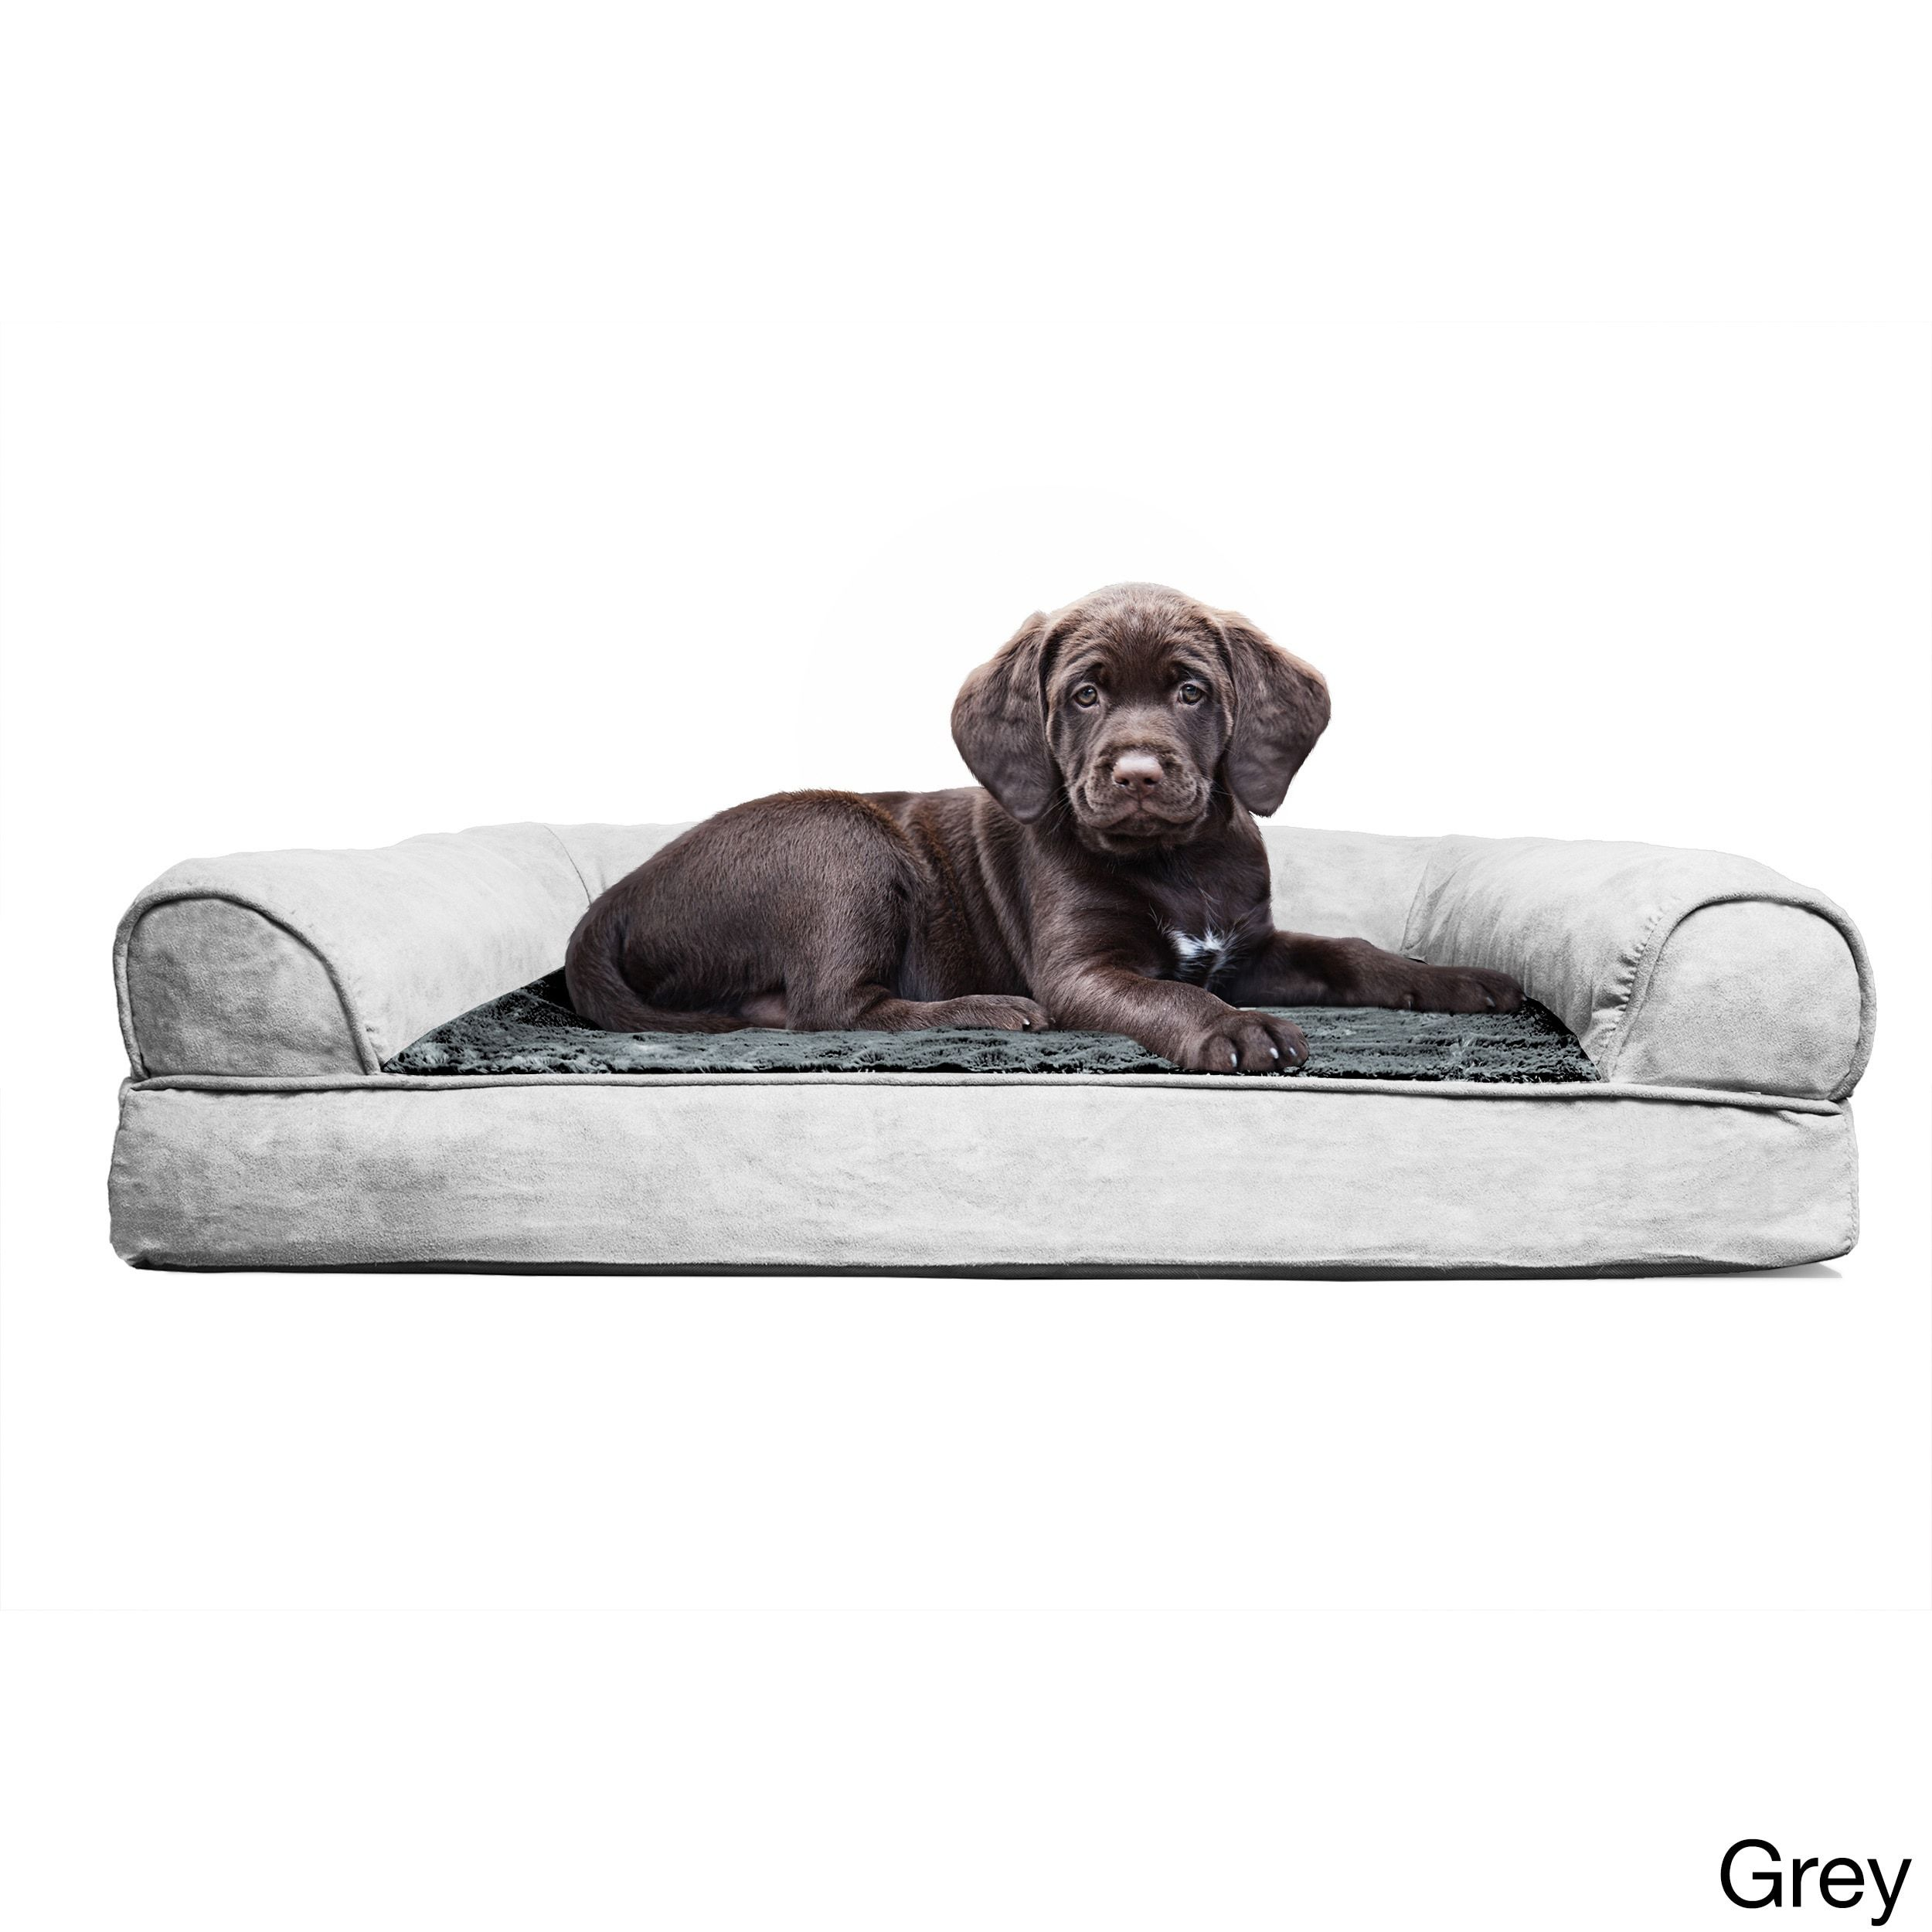 Furhaven Plush Suede Sofa Style Orthopedic Bolster Pet Bed